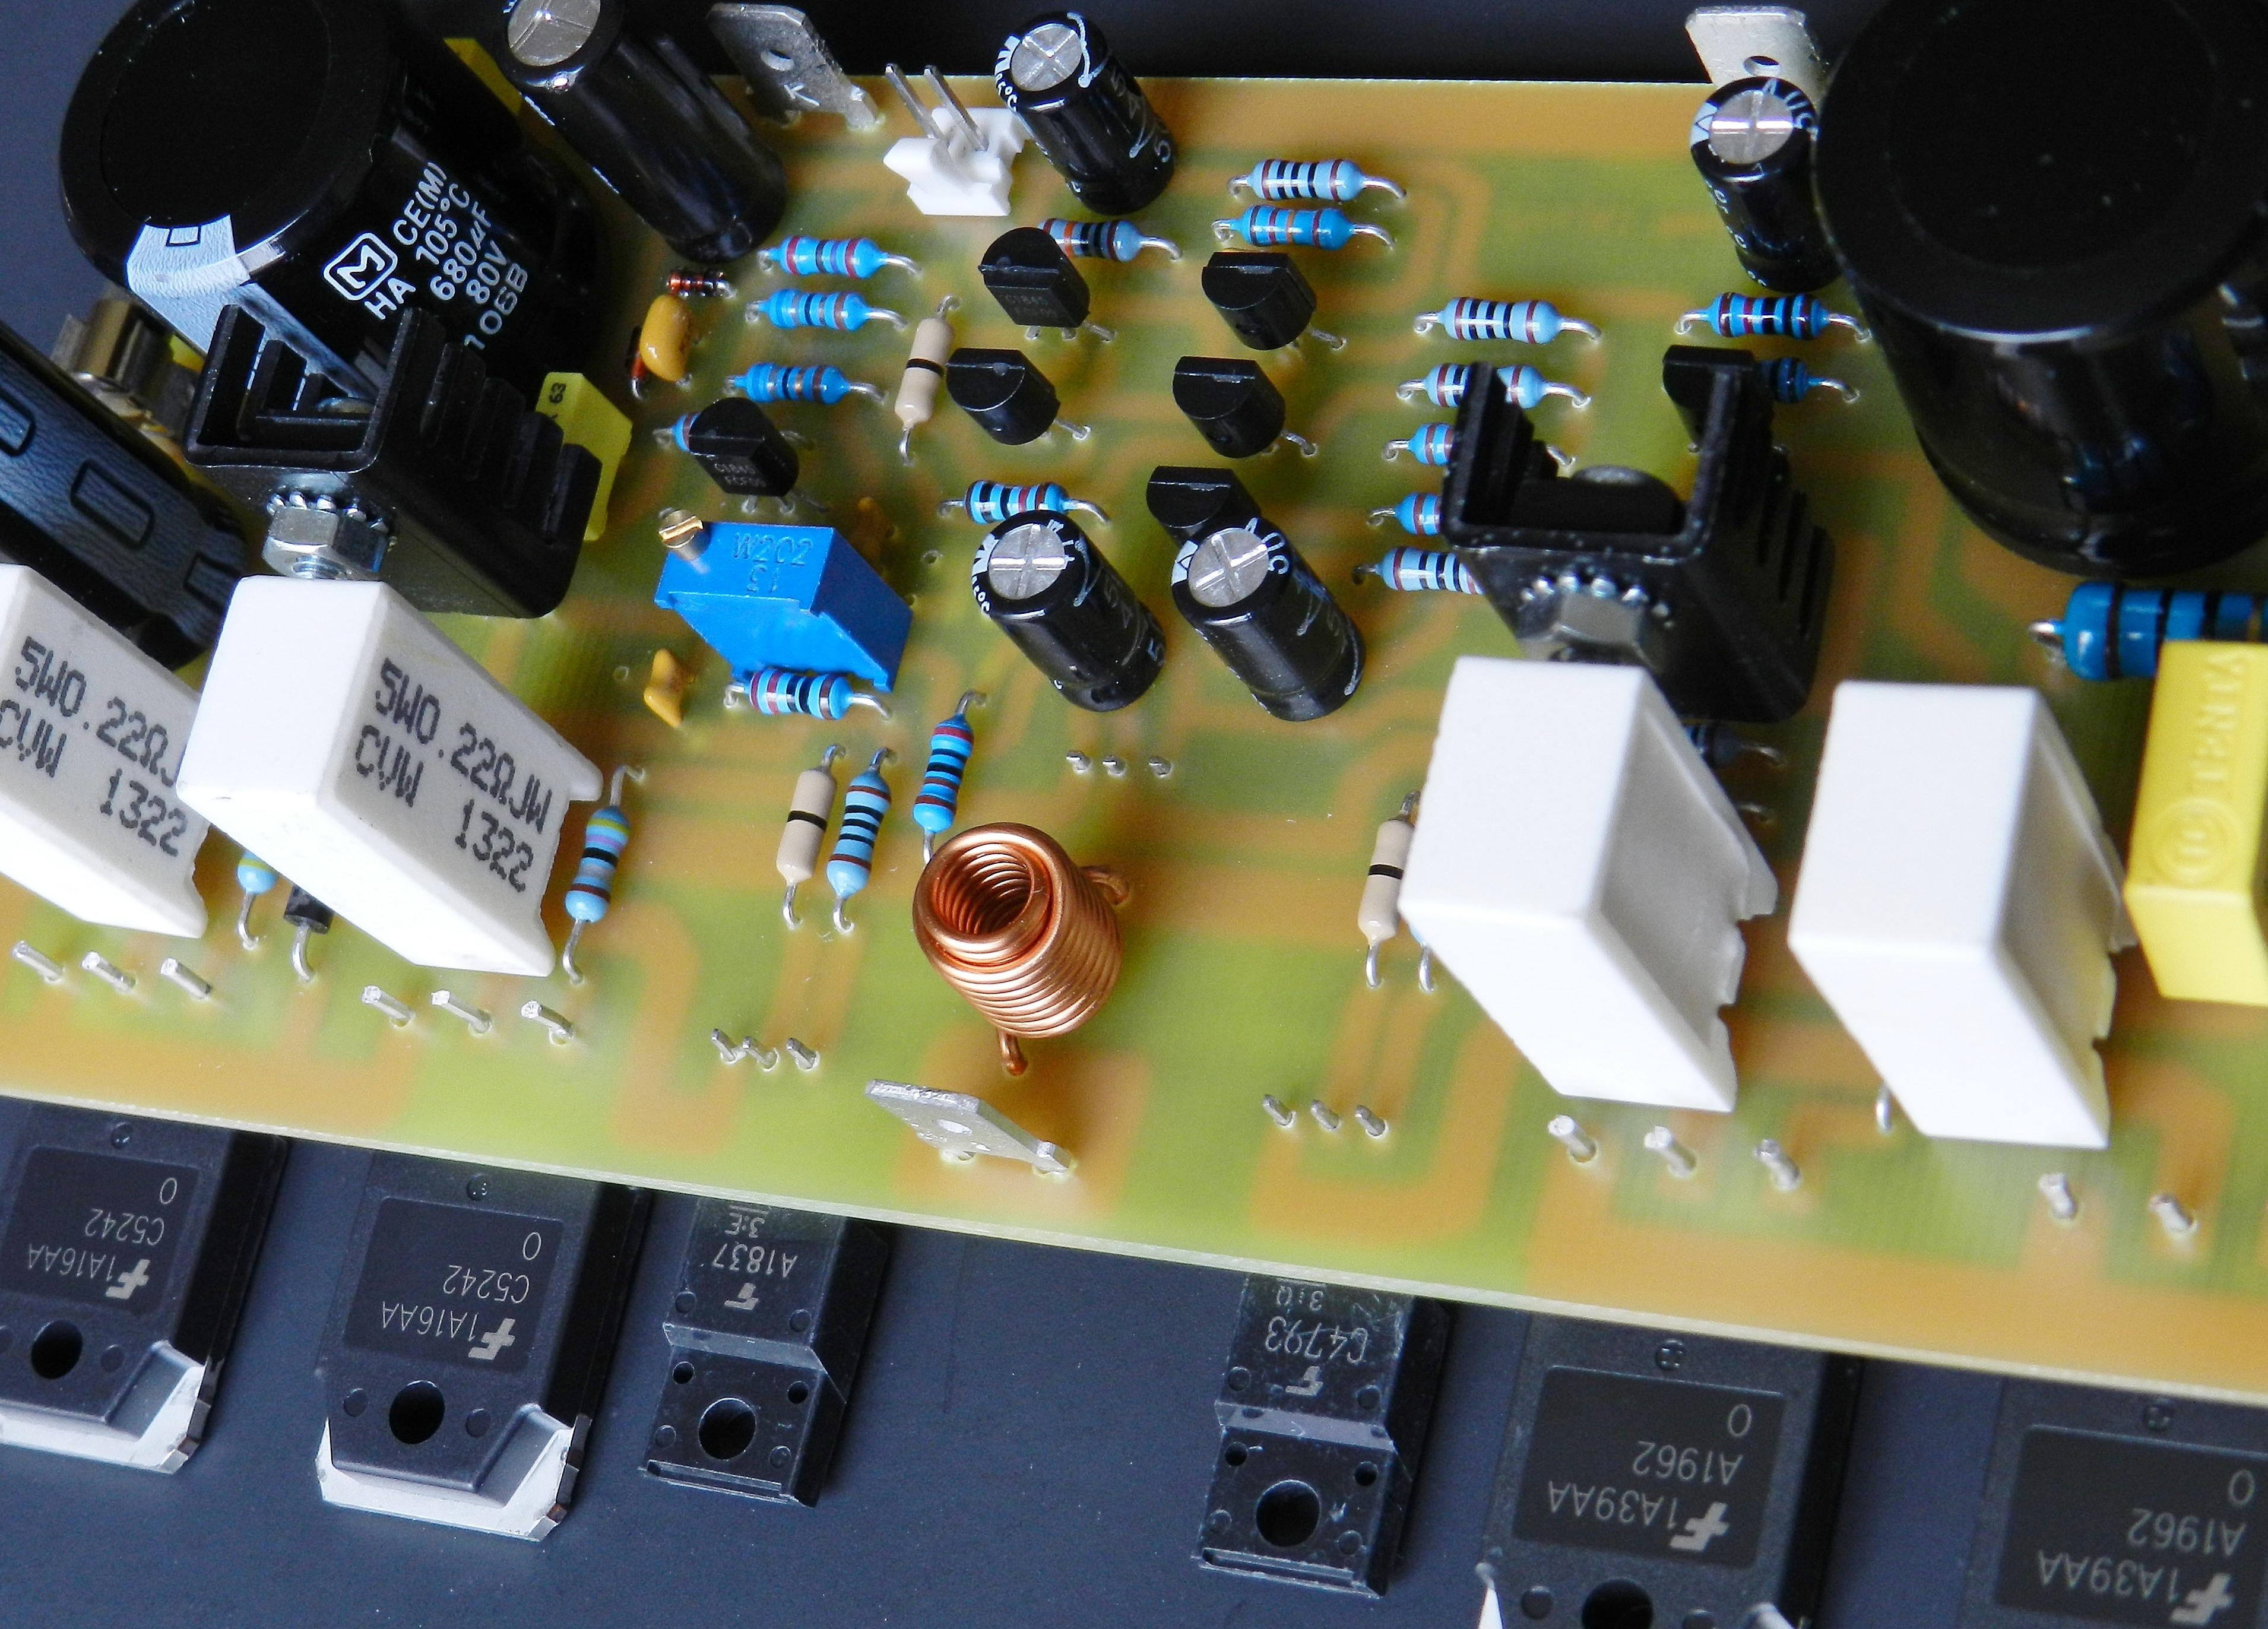 Project 61 Buildaudioamps Amplifier Circuit Construction Details Electronic Projects Is Based On Two Well Known Audio Power Designs The Blameless By Douglas Self And Audiophile G Randy Slone